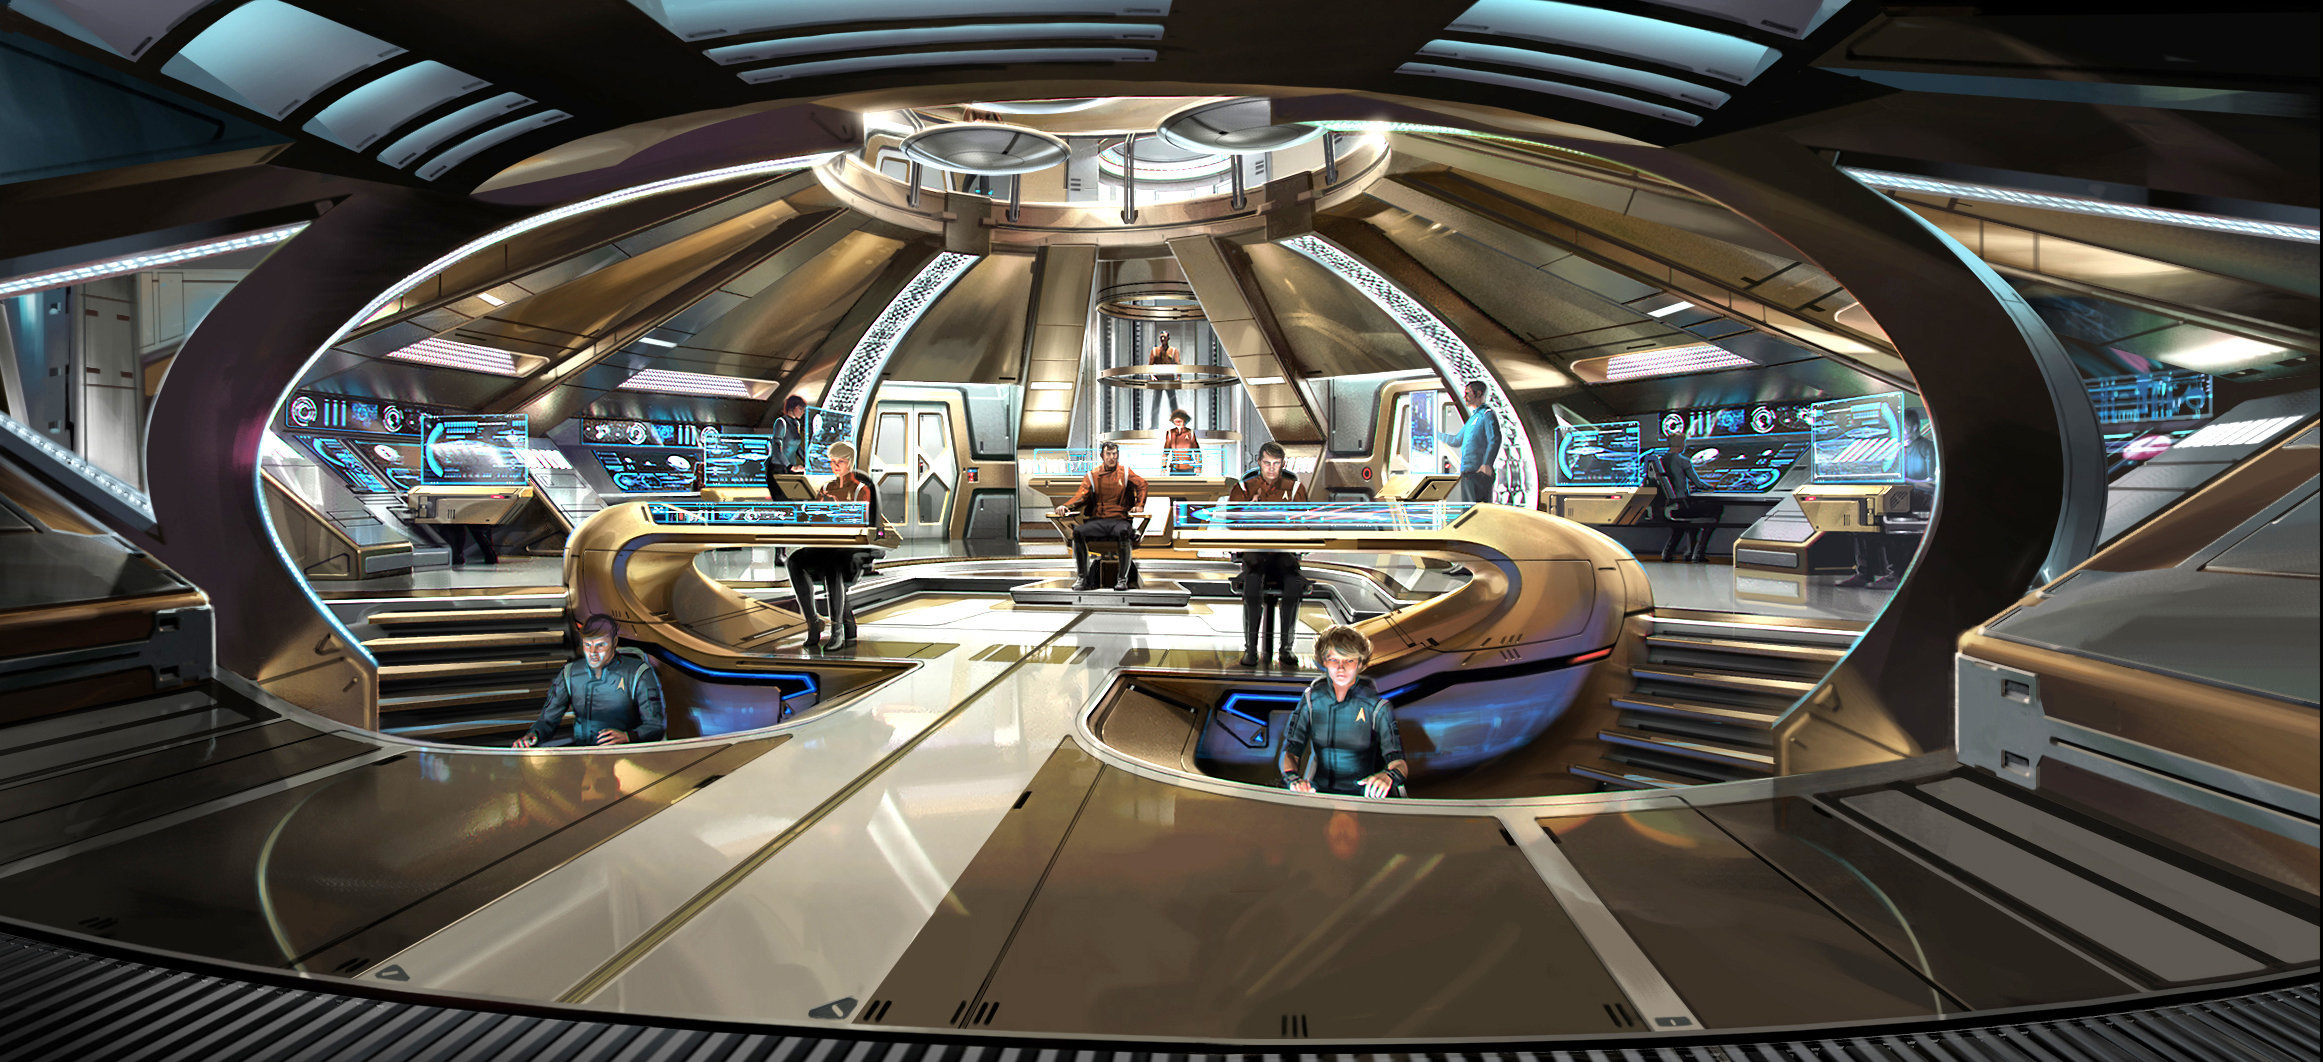 USS DISCOVERY: BRIDGE